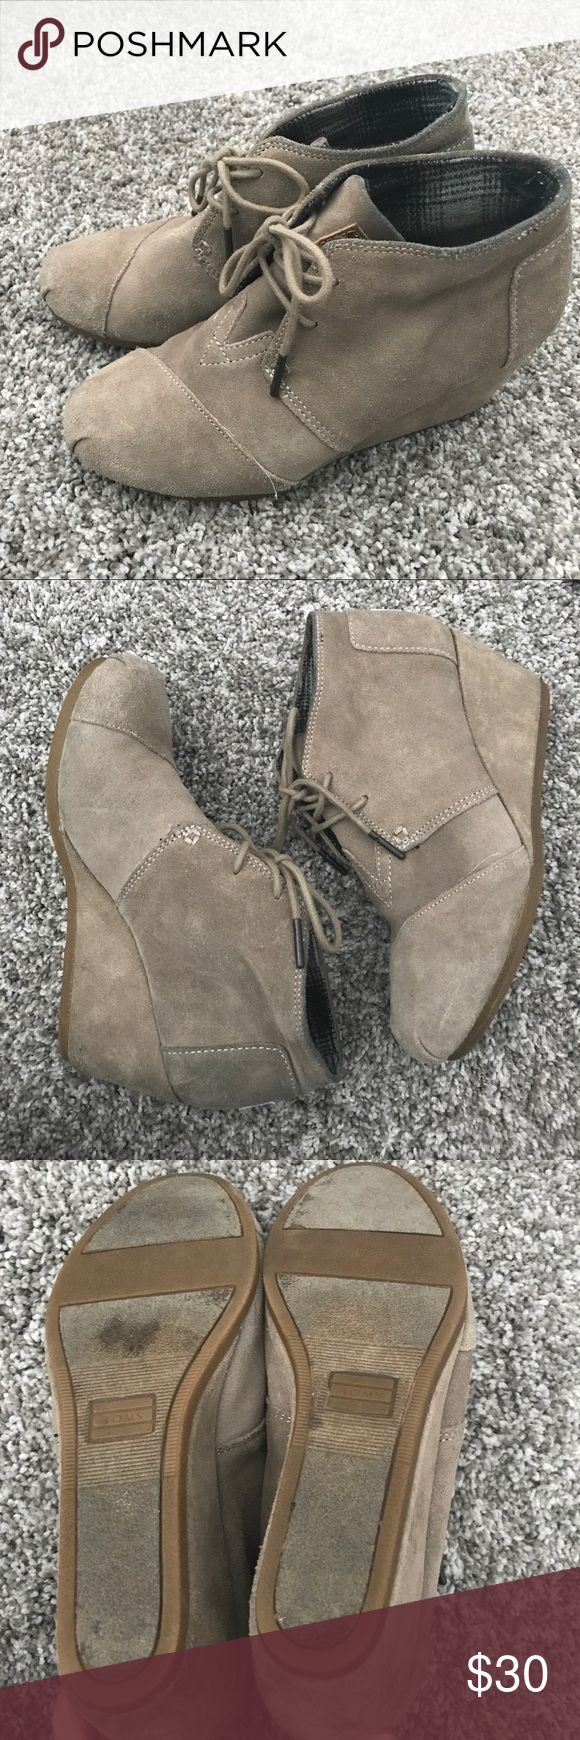 Tom wedge booties Tom wedge booties - great used condition - size 7 Toms Shoes Wedges